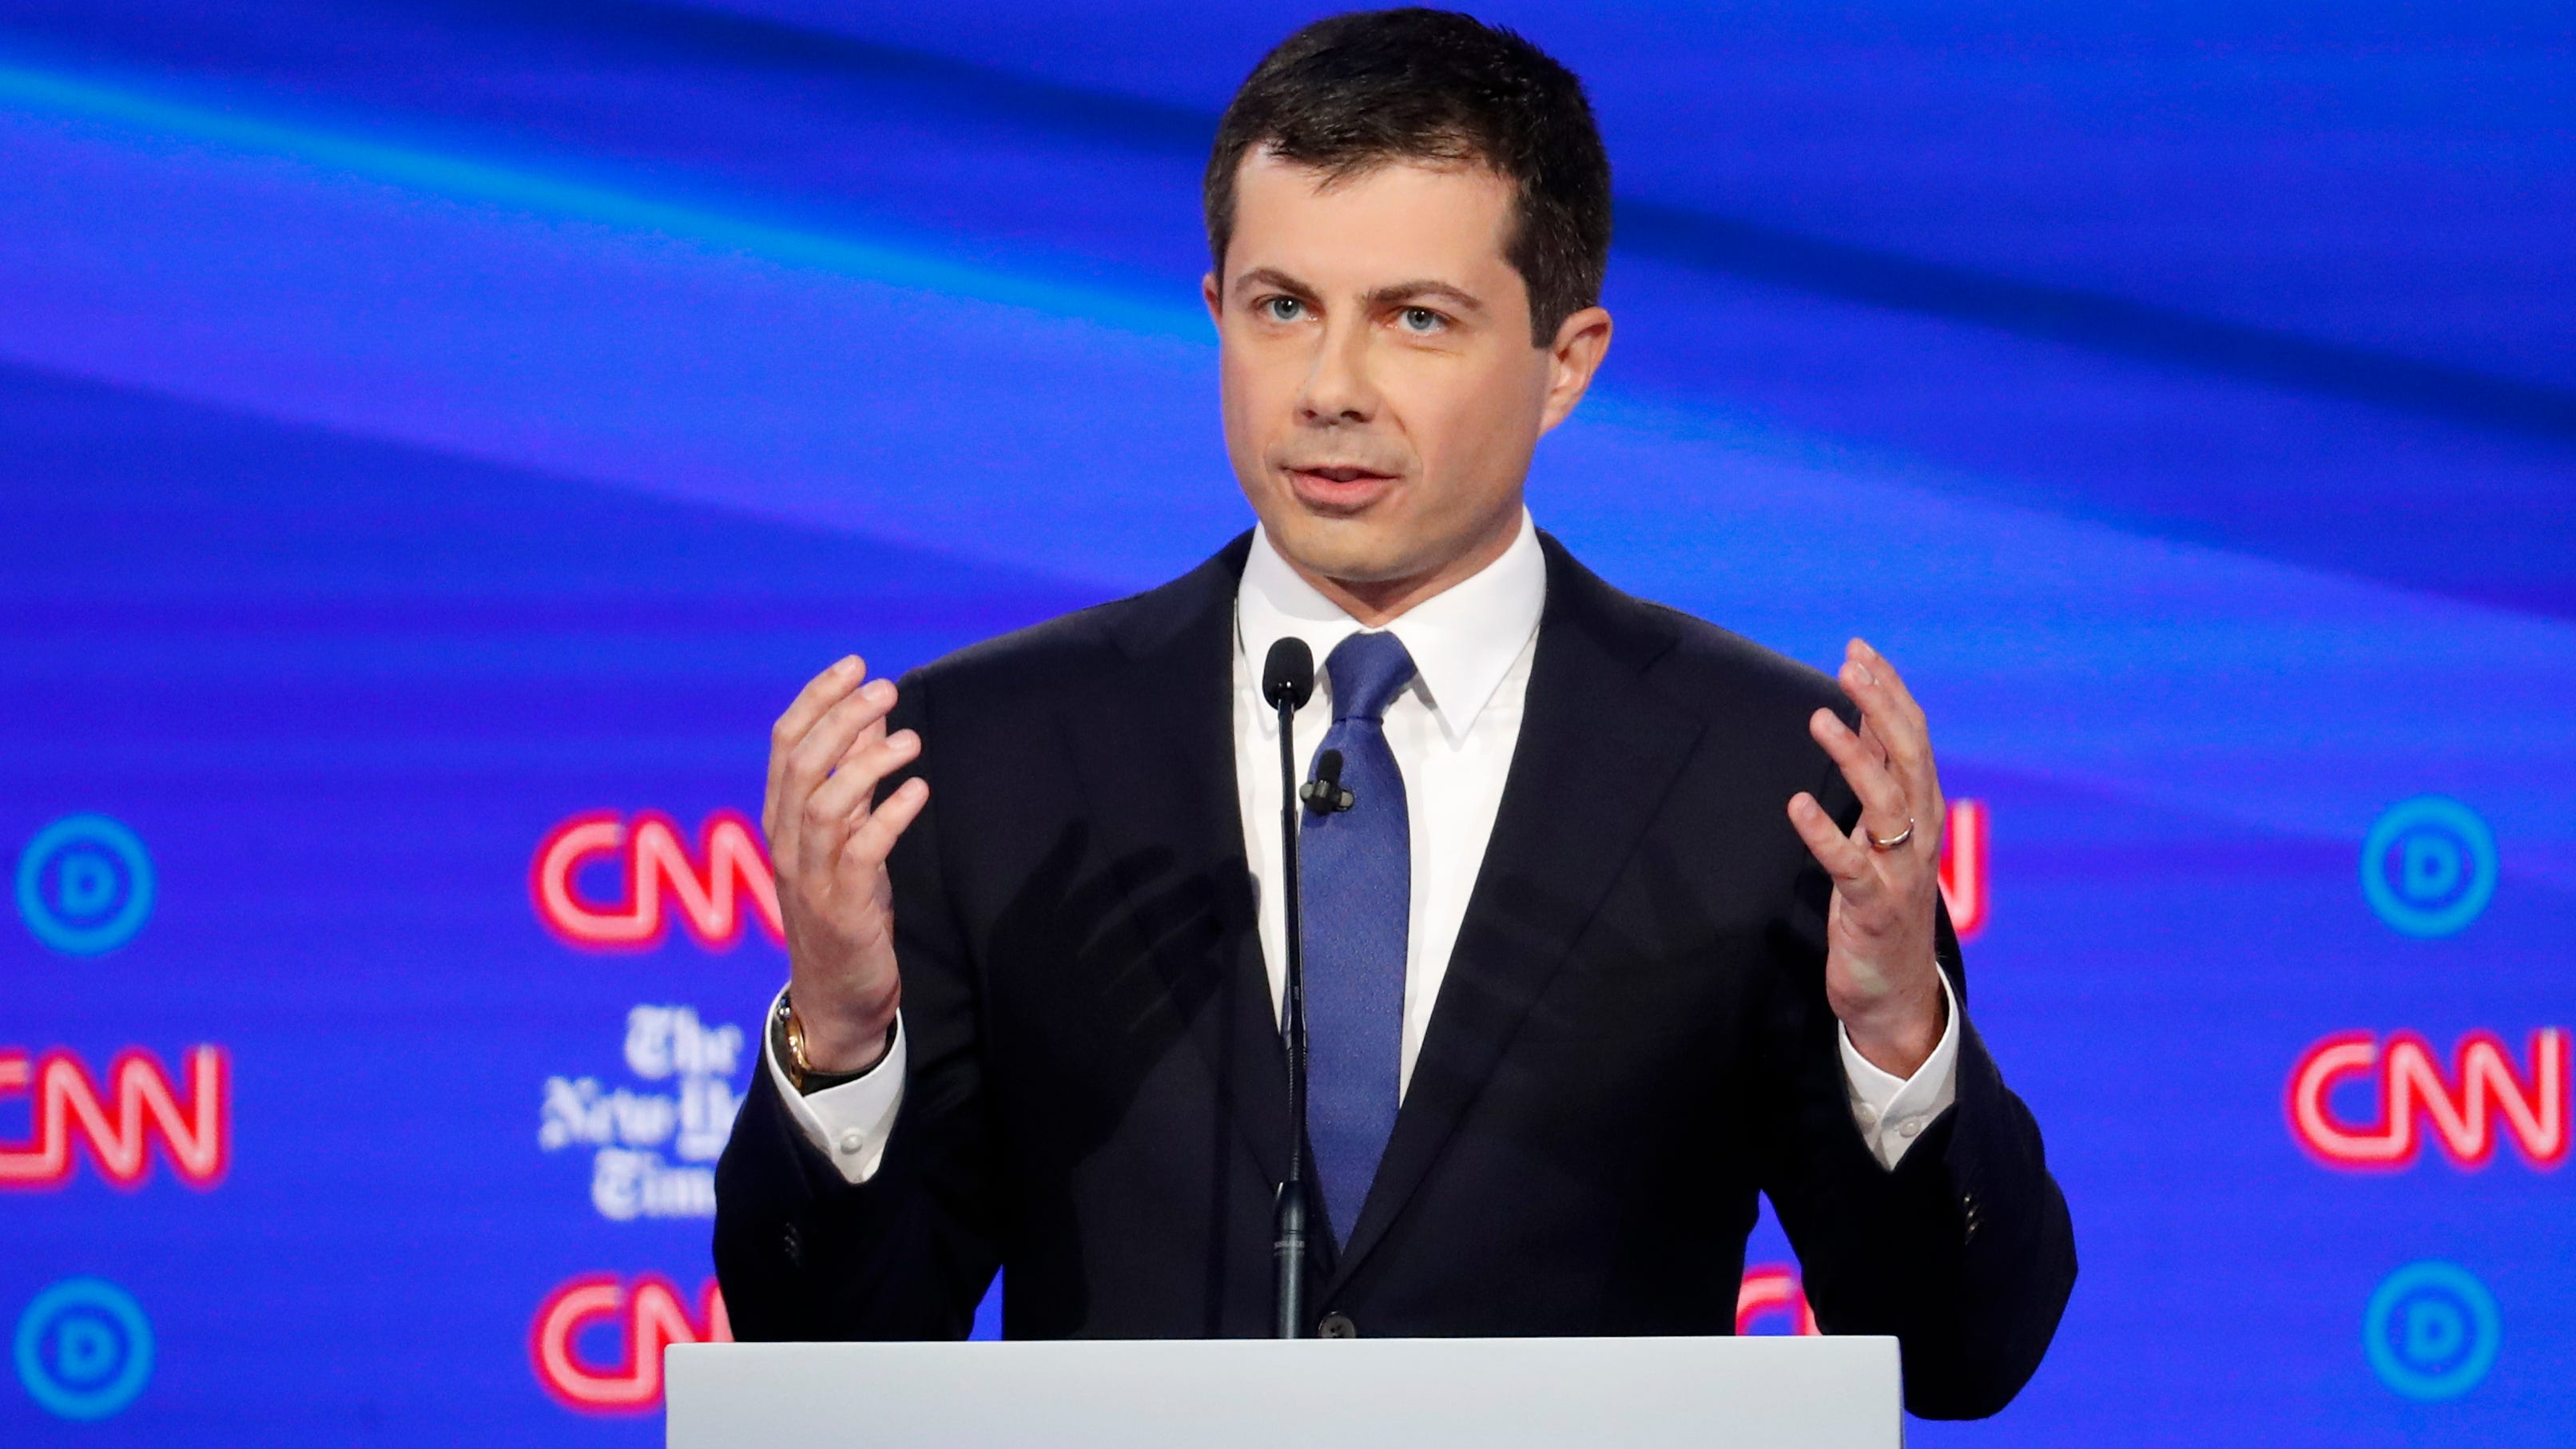 Live debate updates of Buttigieg's performance